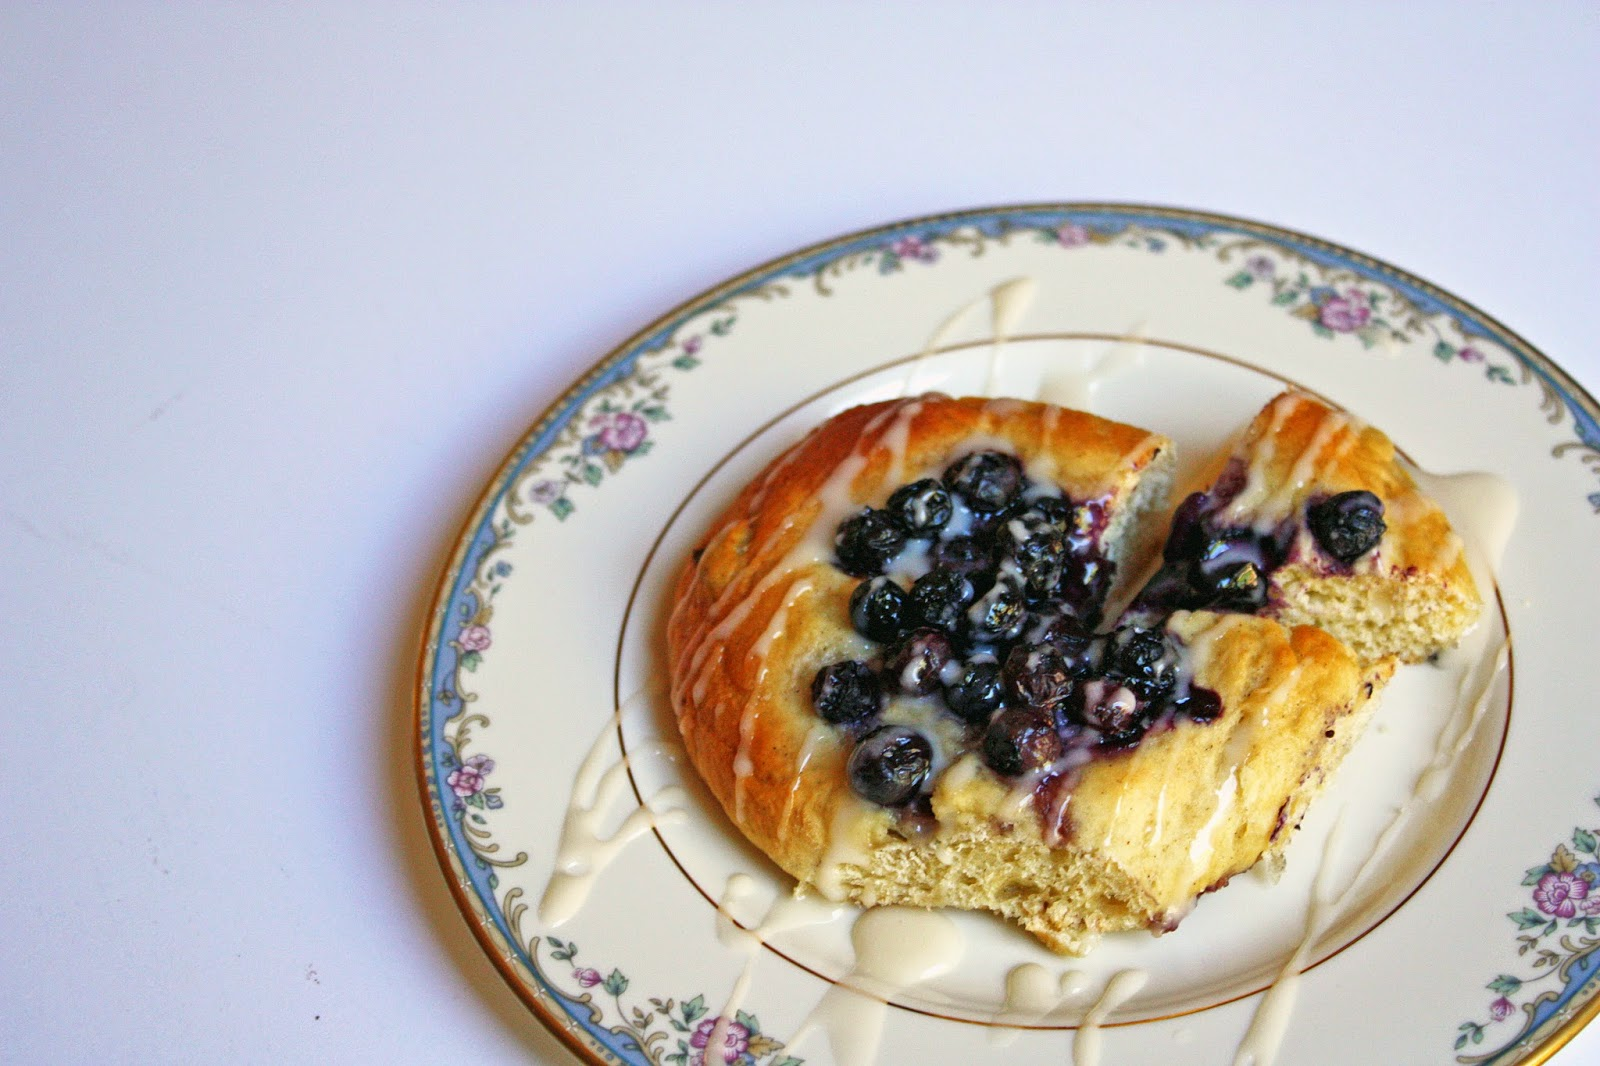 Mustikkapiiraat (Finnish blueberry-filled breakfast buns) with vanilla glaze